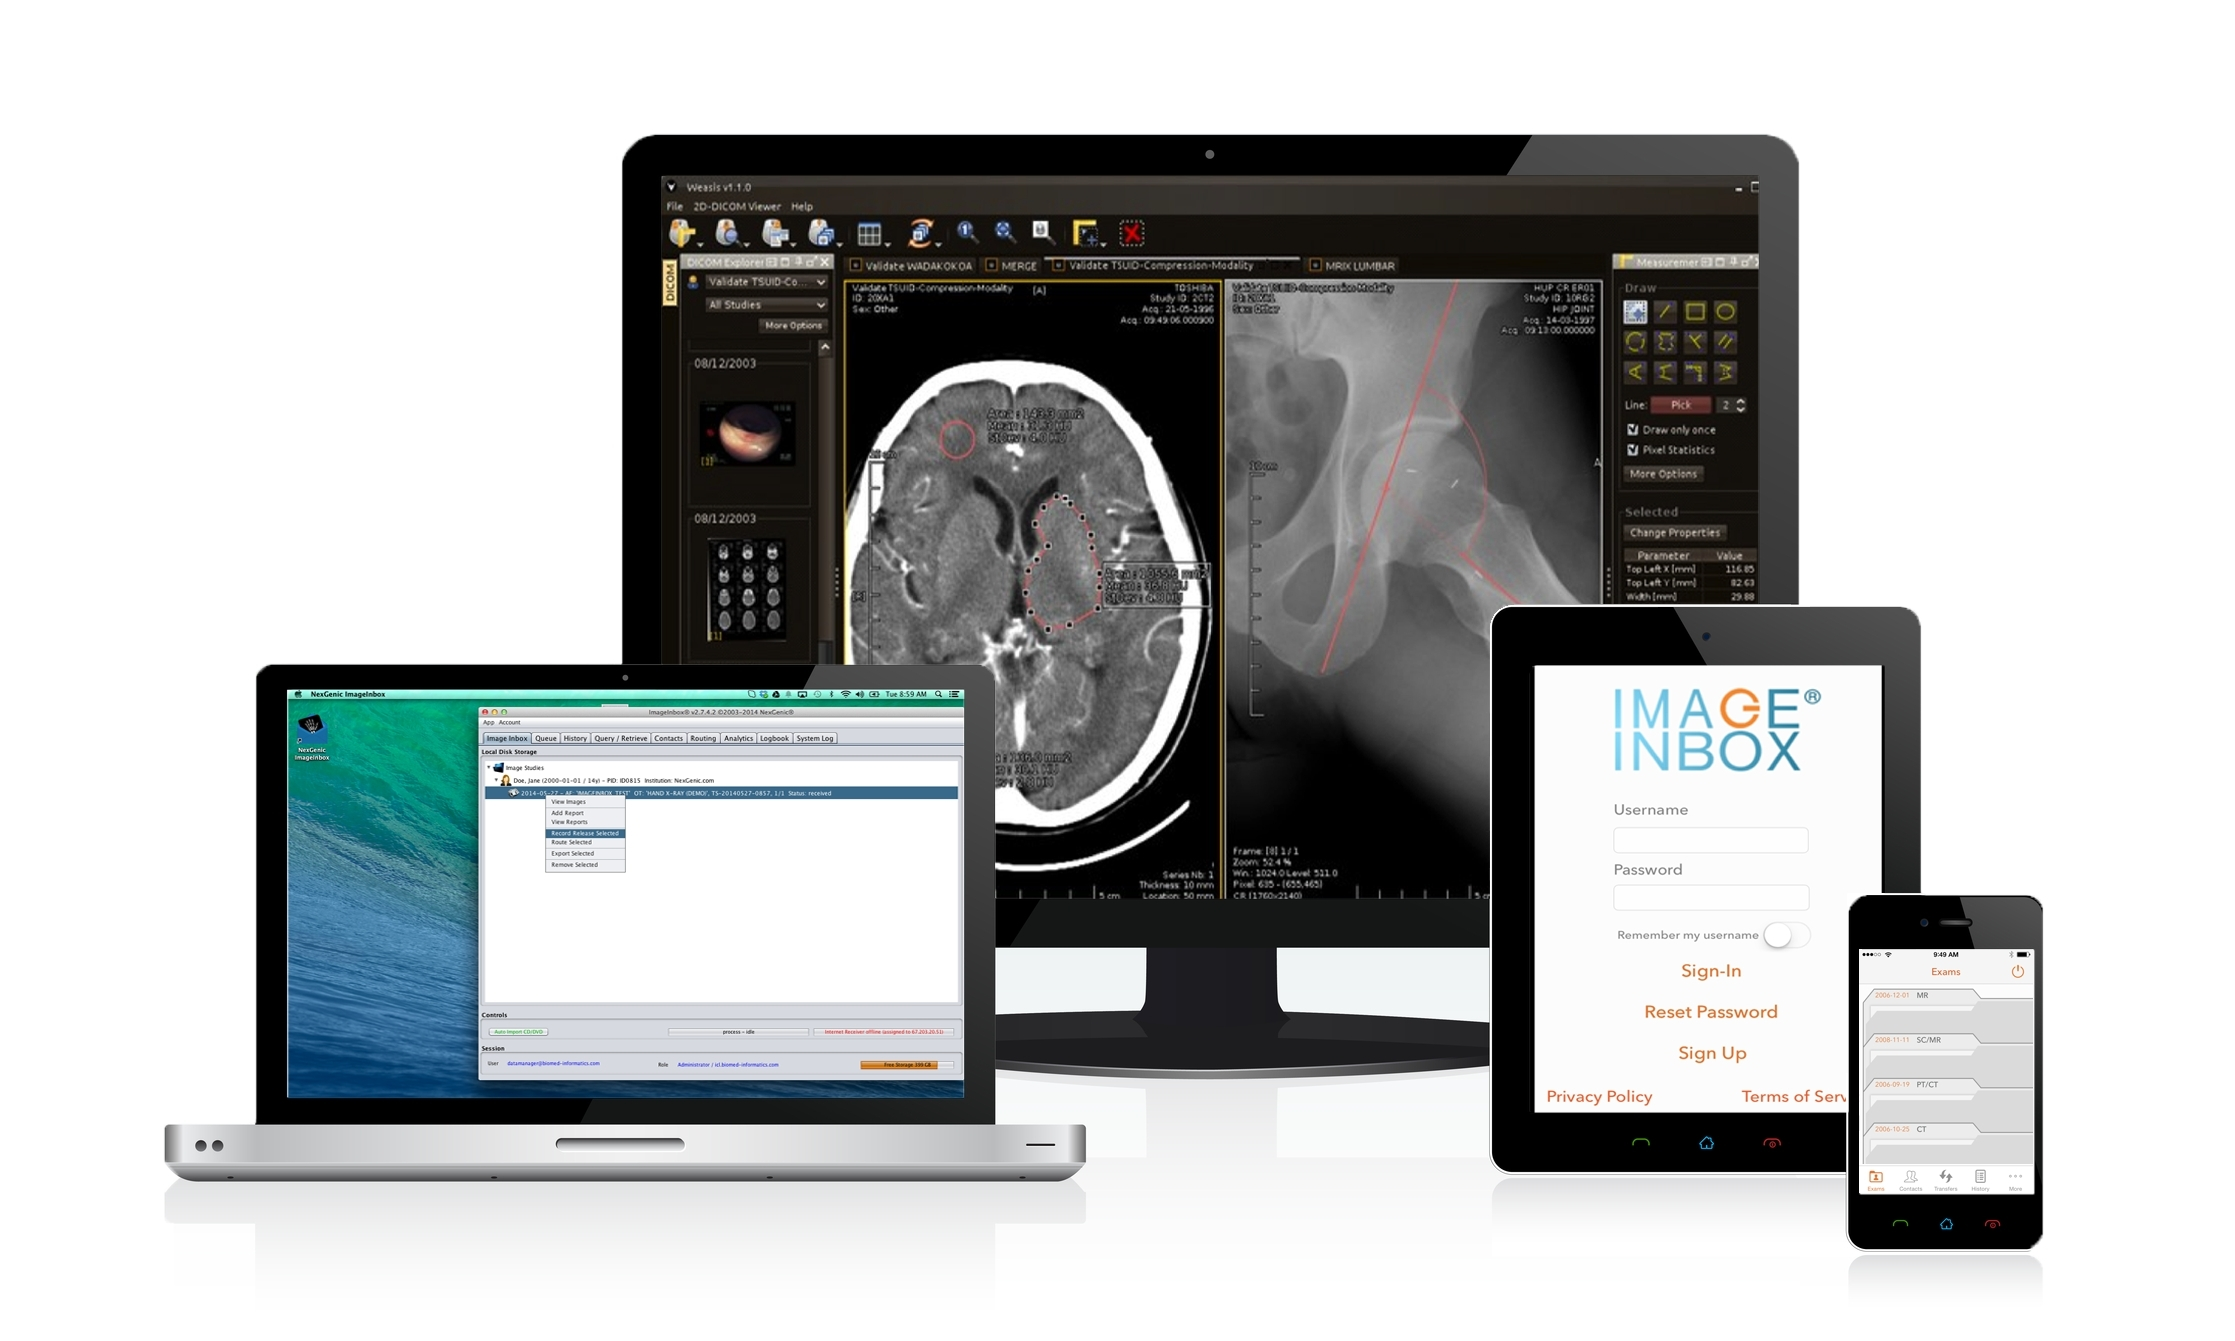 ImageInbox® from NexGenic is an app which makes it possible for patients to personally control and store essential medical images and diagnostic reports, and securely deliver them on demand via their iPhone, iPad, laptop or desktop to healthcare providers. All of this is as easy as sending an email. (Photo: Business Wire)